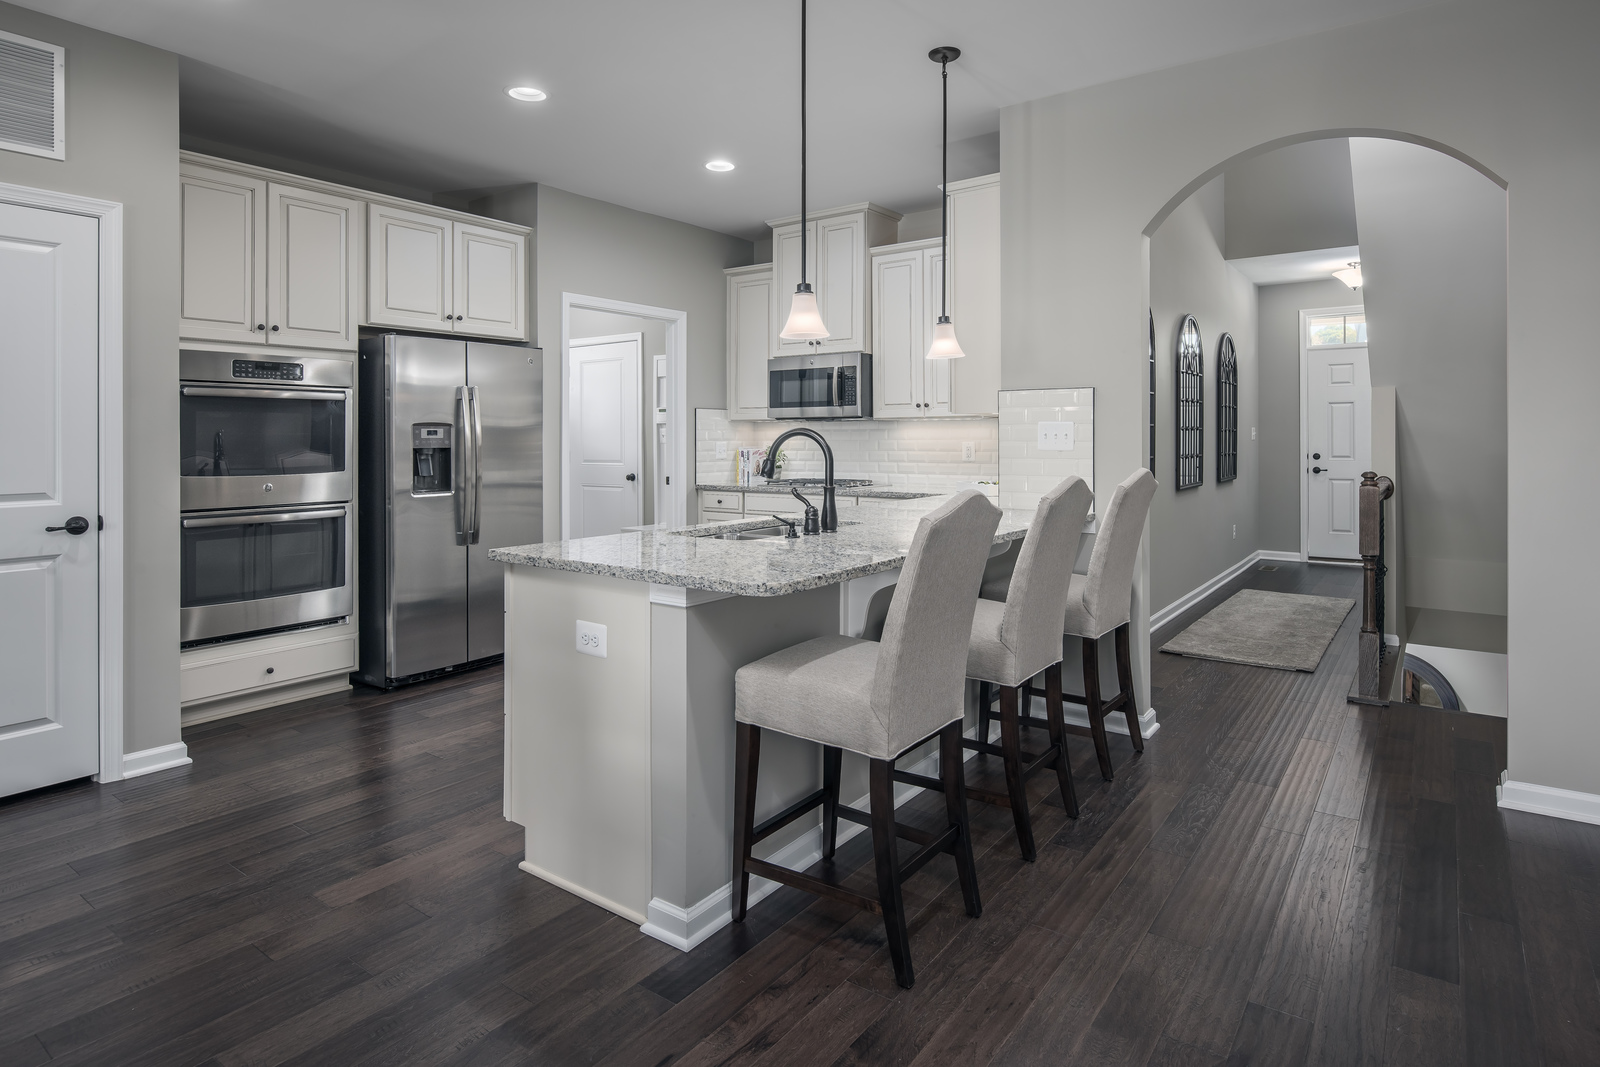 You'll love cooking and entertaining in an expansive kitchen full of cabinets for storage and counterspace galore!